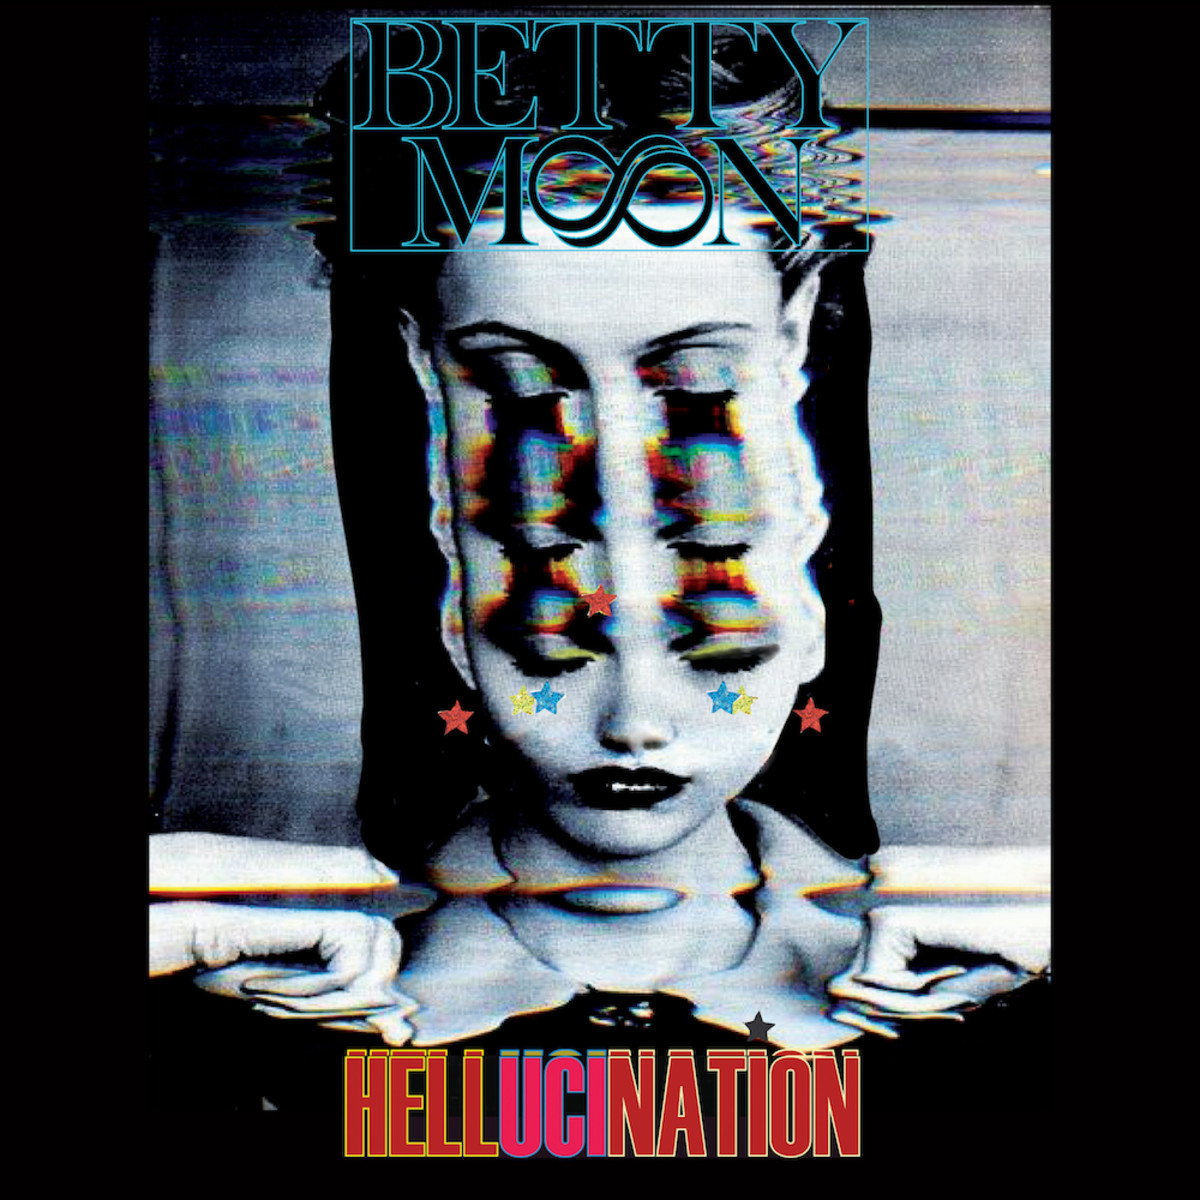 Betty Moon's latest LP 'Hellucination'